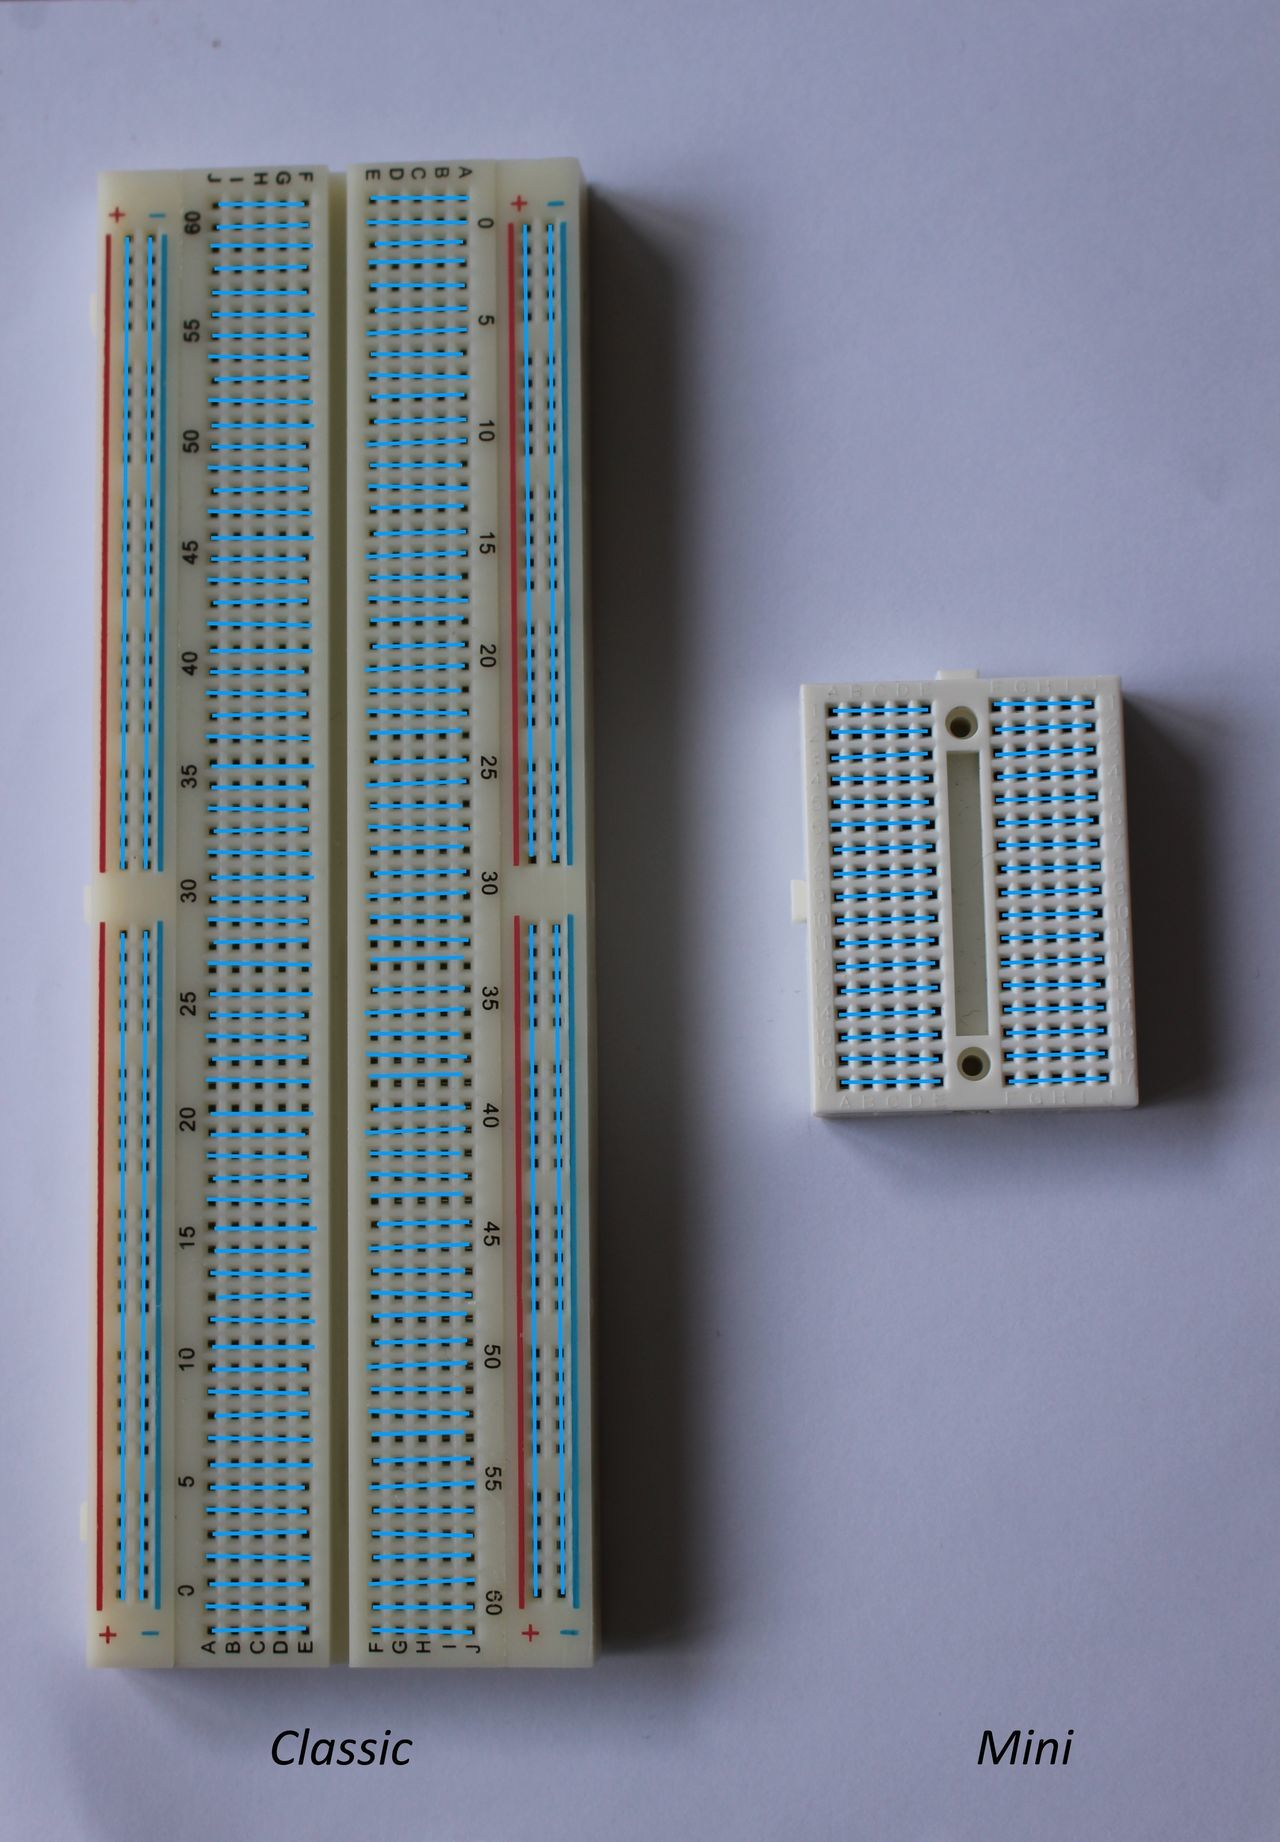 Classic breadboard connections